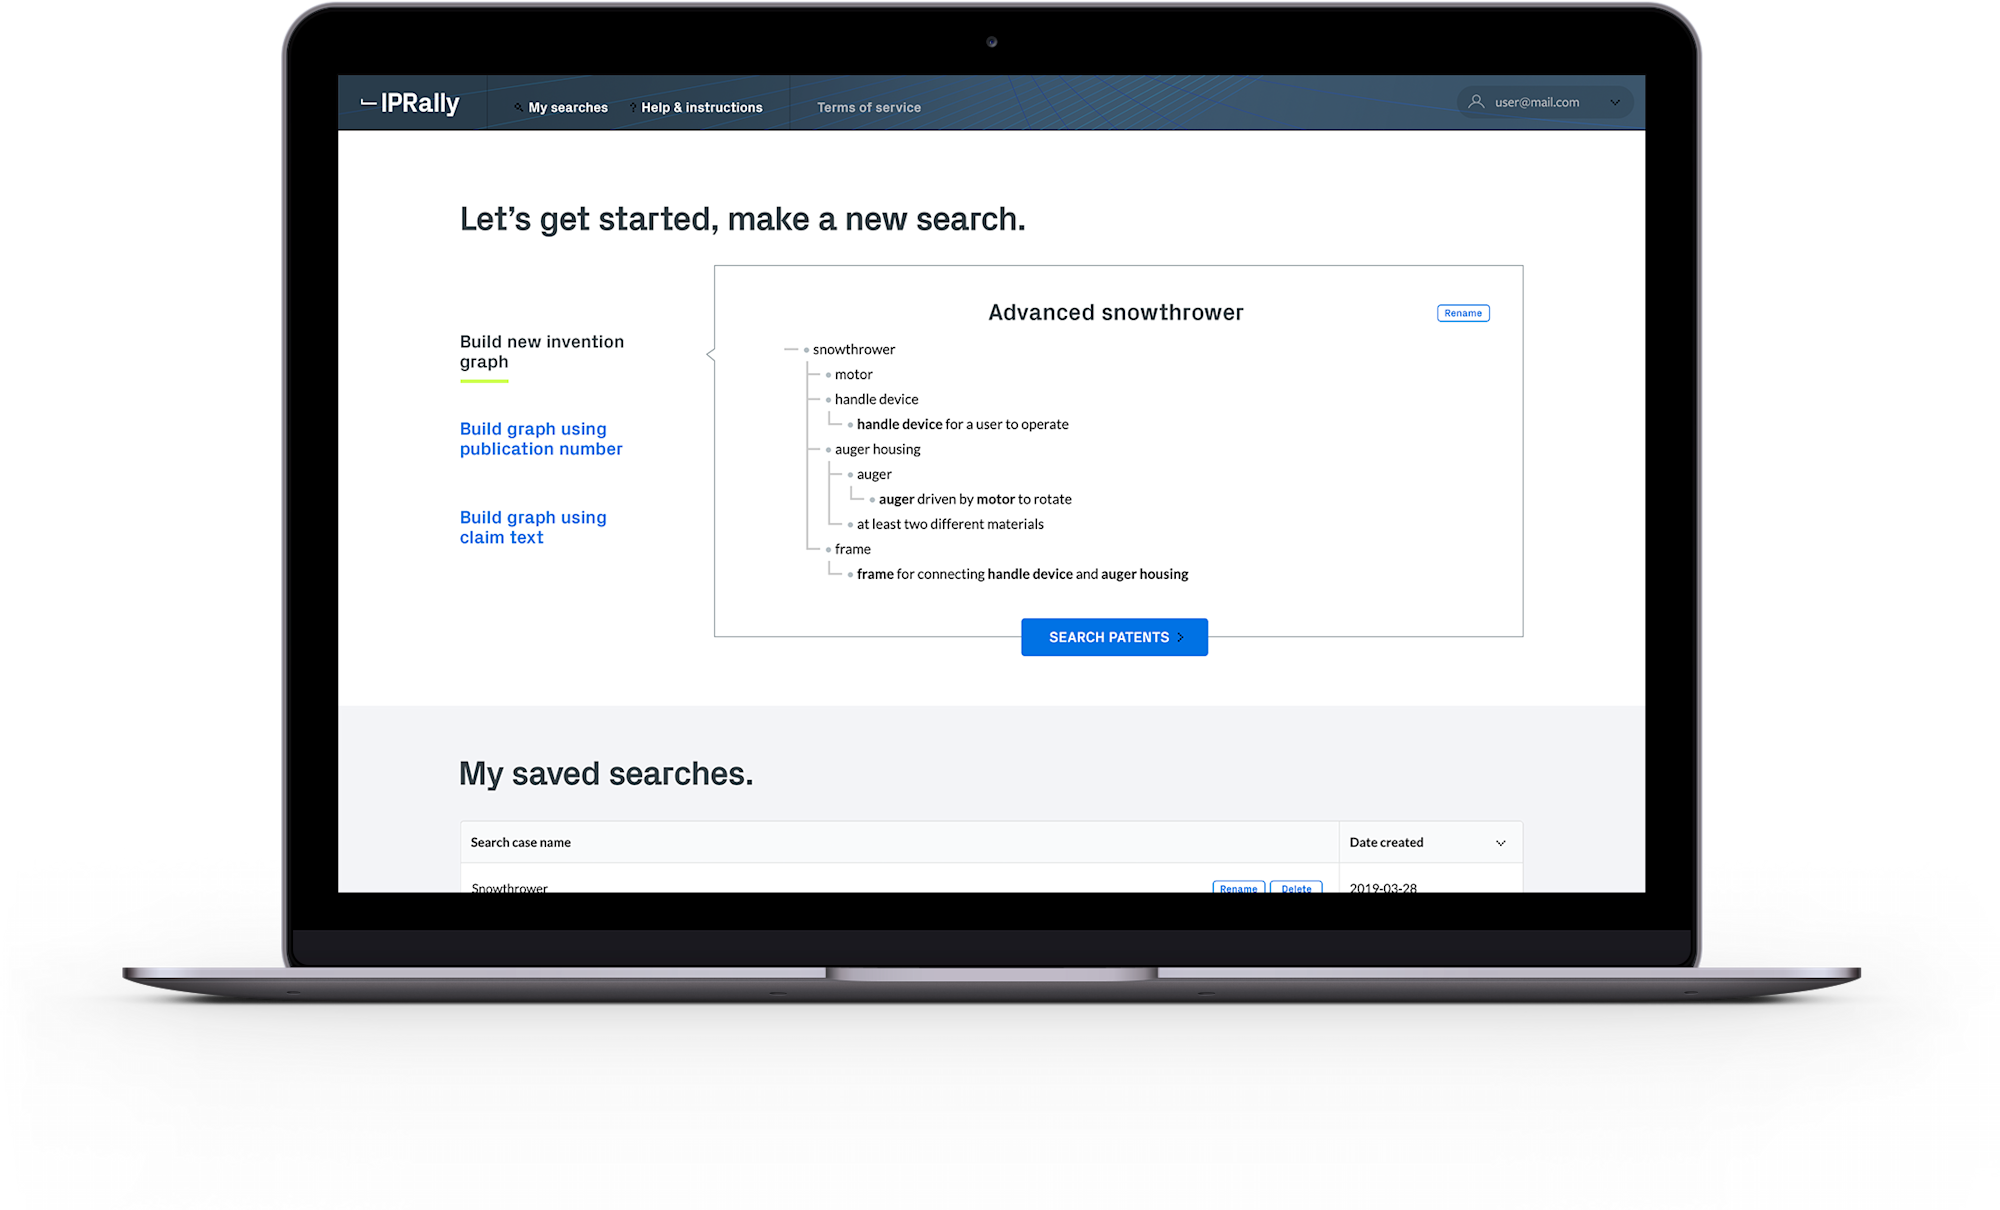 IPRally is building a knowledge graph-based search engine for patents